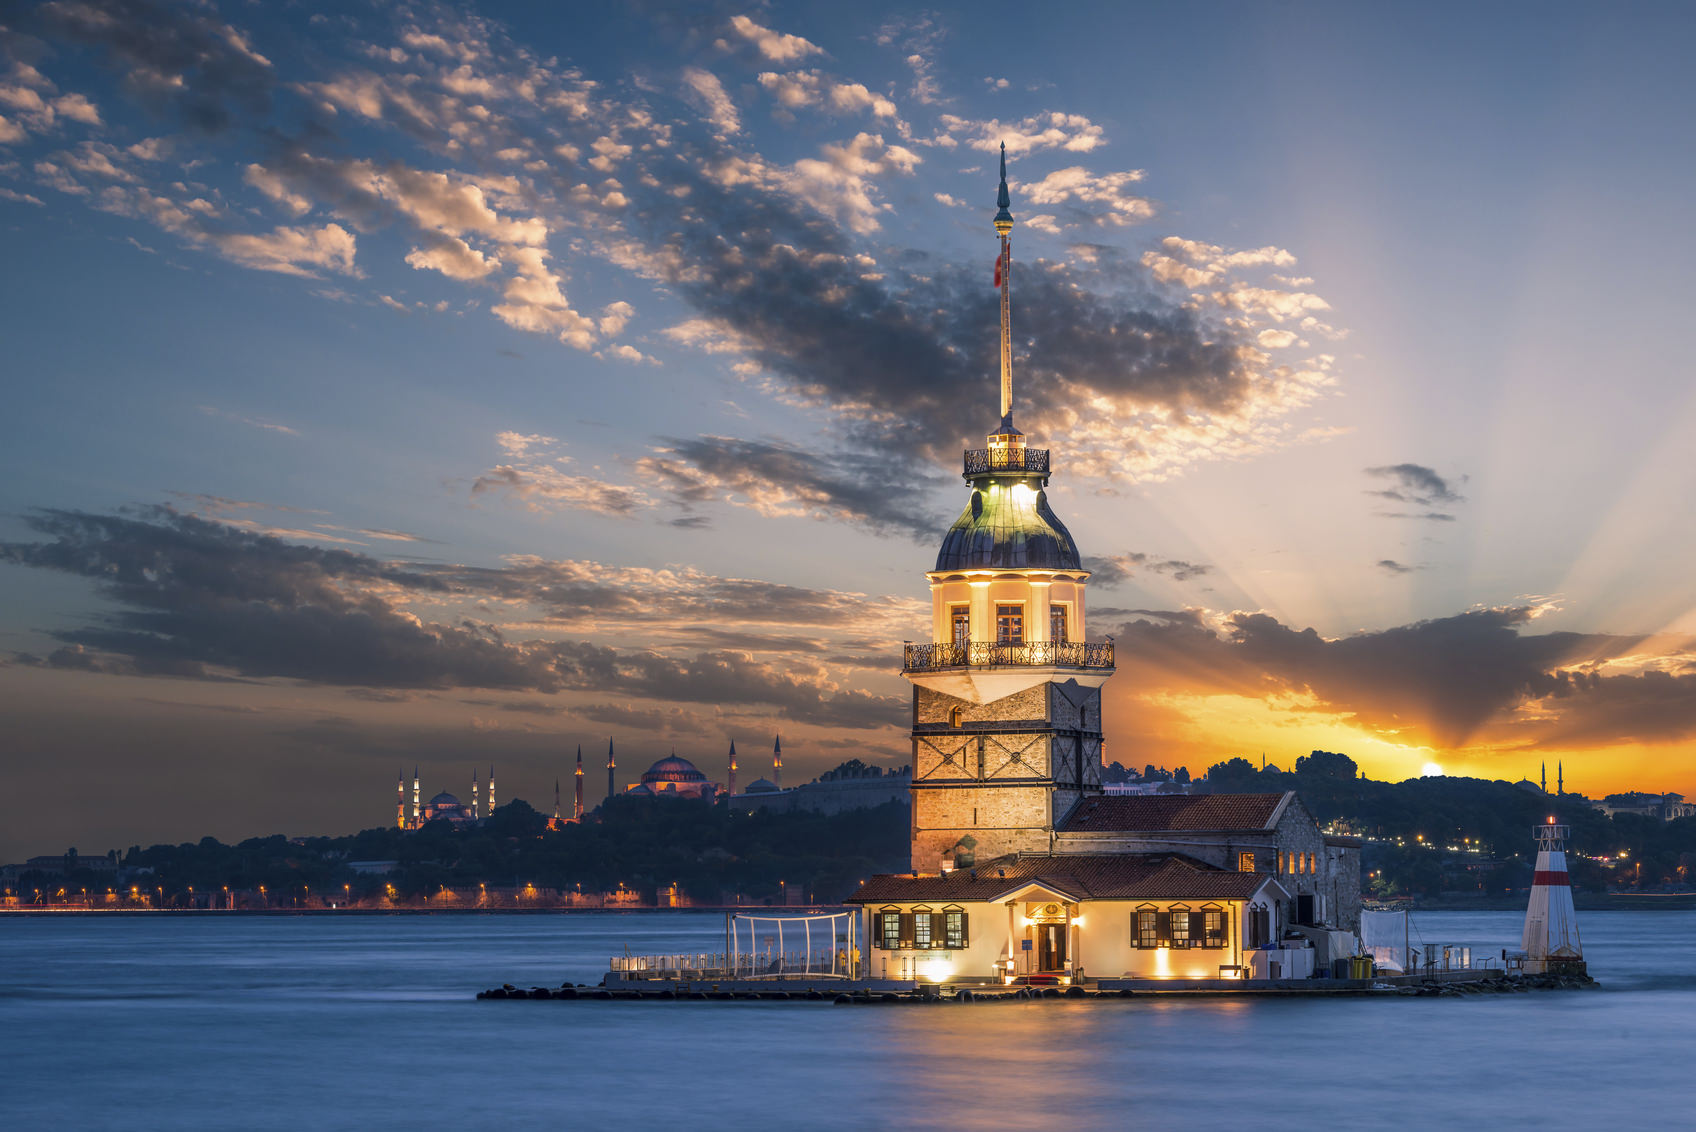 Maiden's Tower lit up in early evening, with the Hagia Sophia and the Blue Mosque in the far distance.